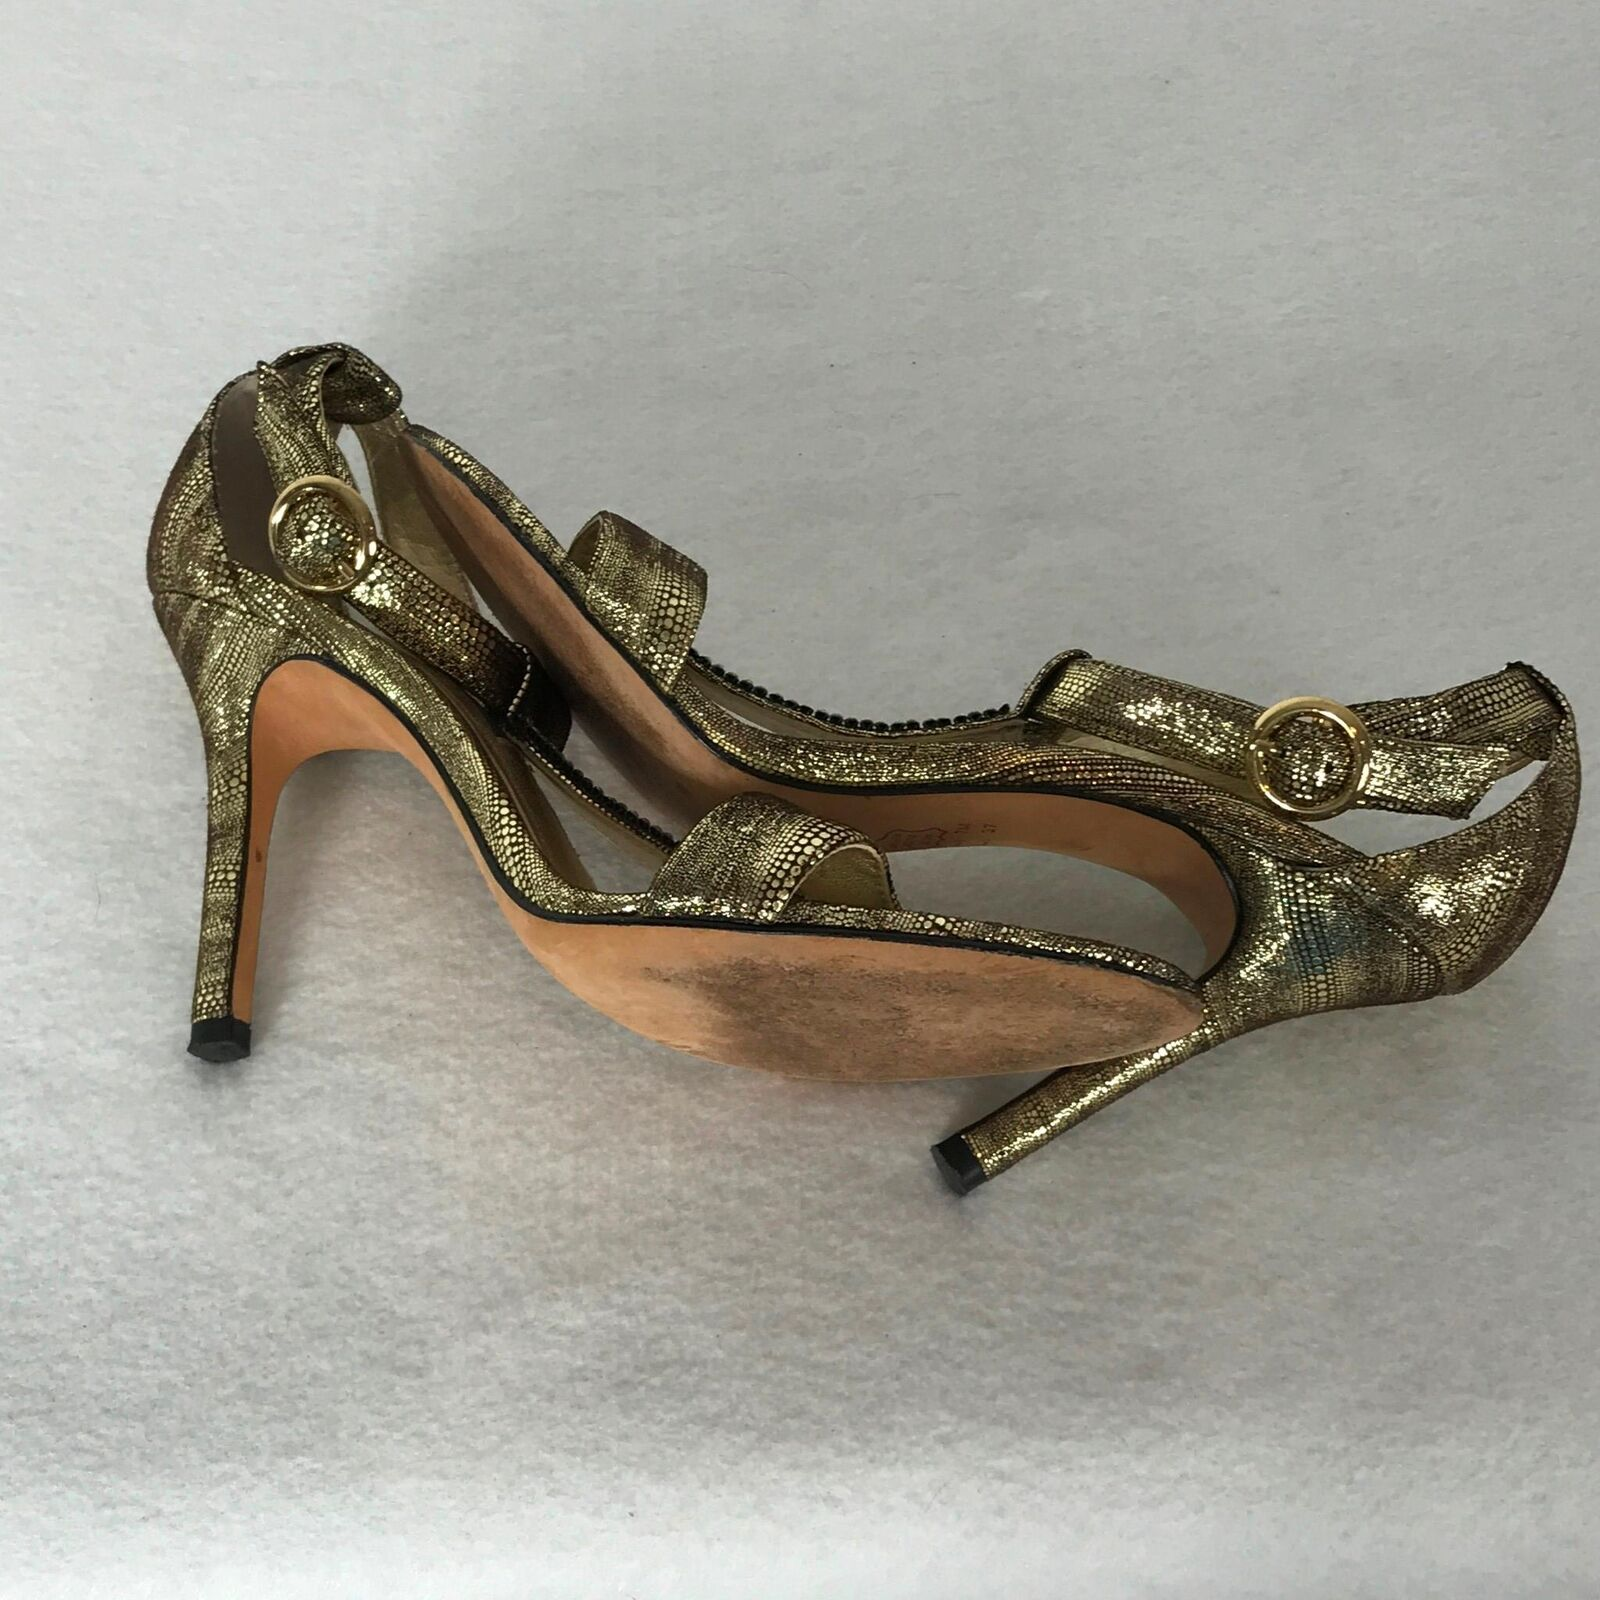 Nina New New New York Sz 7M US gold Olive Brown T-Strap Open-Toe Leather Sandal 4  Heels e4b294